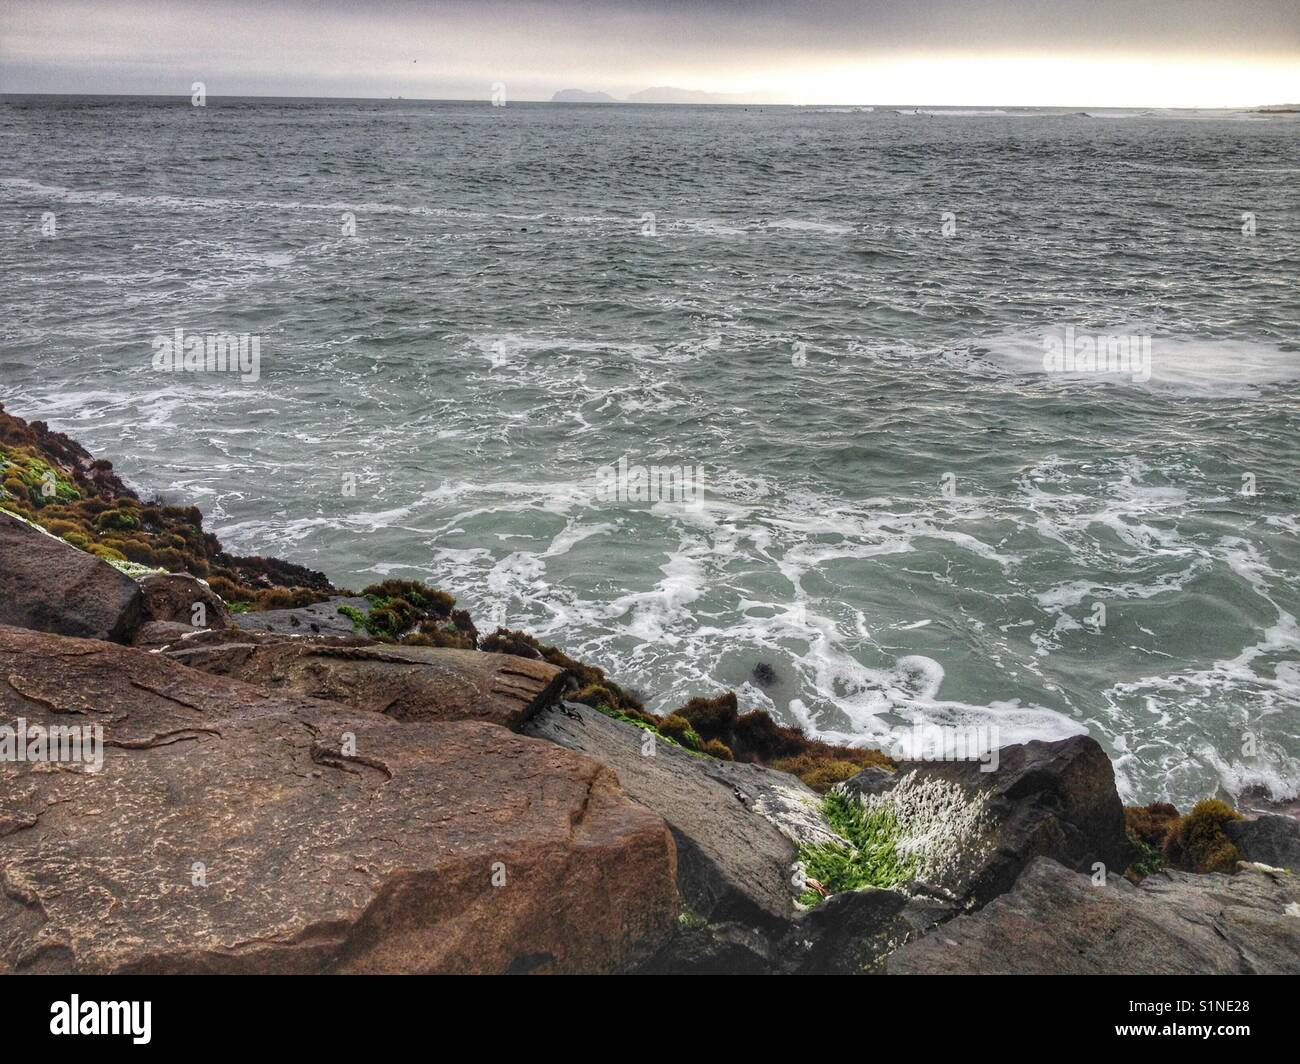 Choppy waters of the Pacific Ocean seen from Lima, Peru. - Stock Image